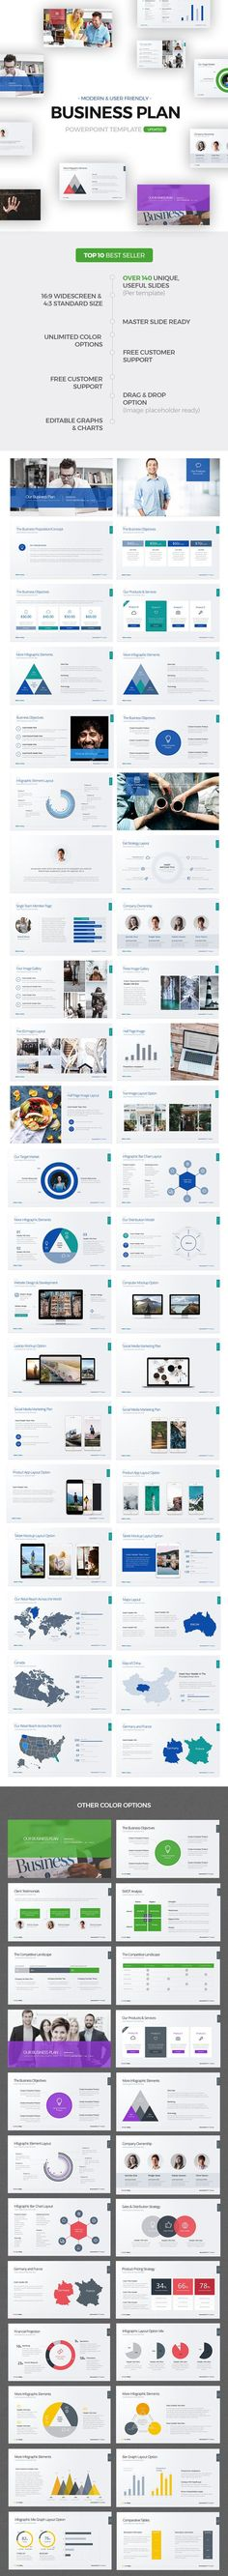 Buy Business Plan Keynote by DesignDistrict on GraphicRiver. Get a modern Keynote Presentation that is beautifully designed and functional. This slides comes with infographic ele. Create Powerpoint Template, Powerpoint Tutorial, Powerpoint Themes, Business Powerpoint Templates, Creative Powerpoint, Infographic Templates, Keynote Template, Microsoft Powerpoint, Powerpoint Presentations